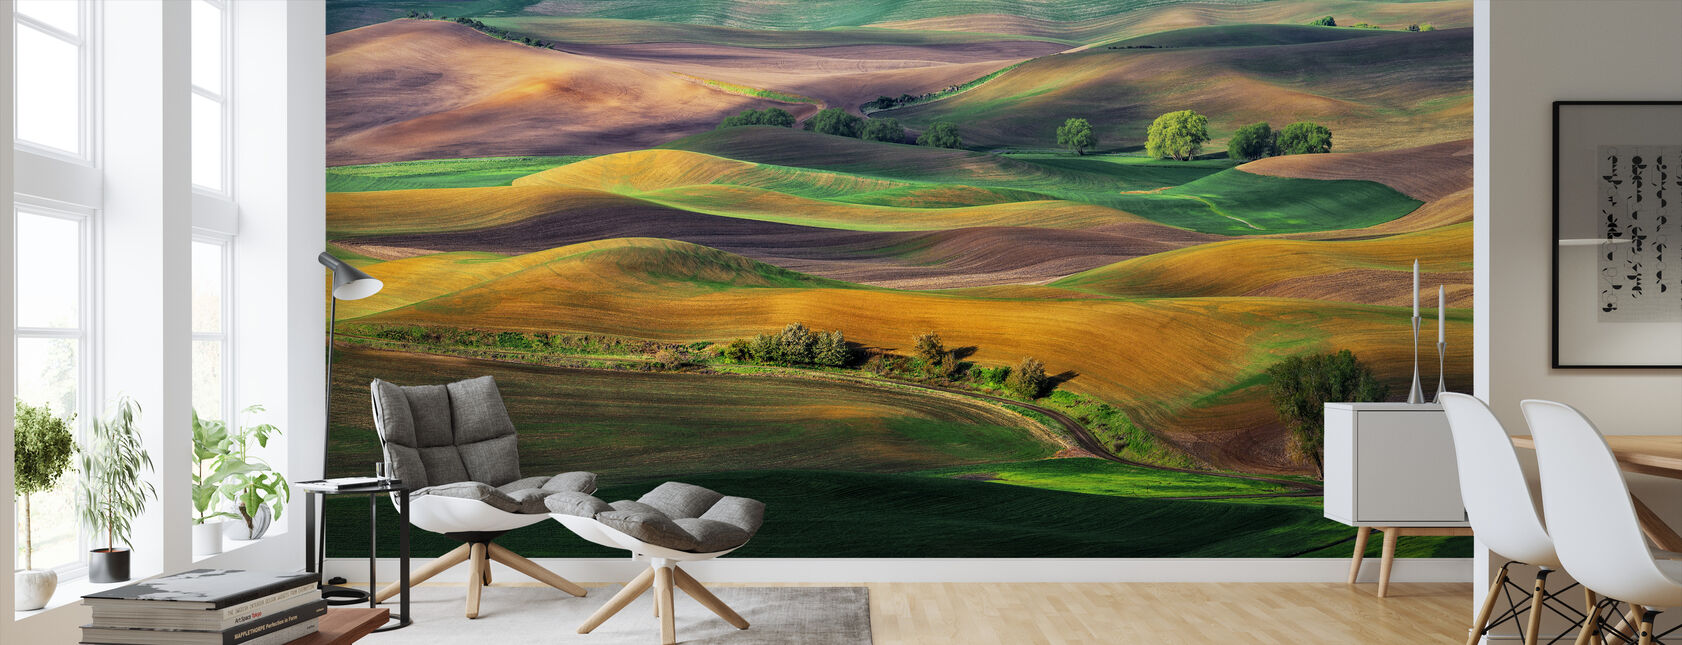 The Palouse - Wallpaper - Living Room